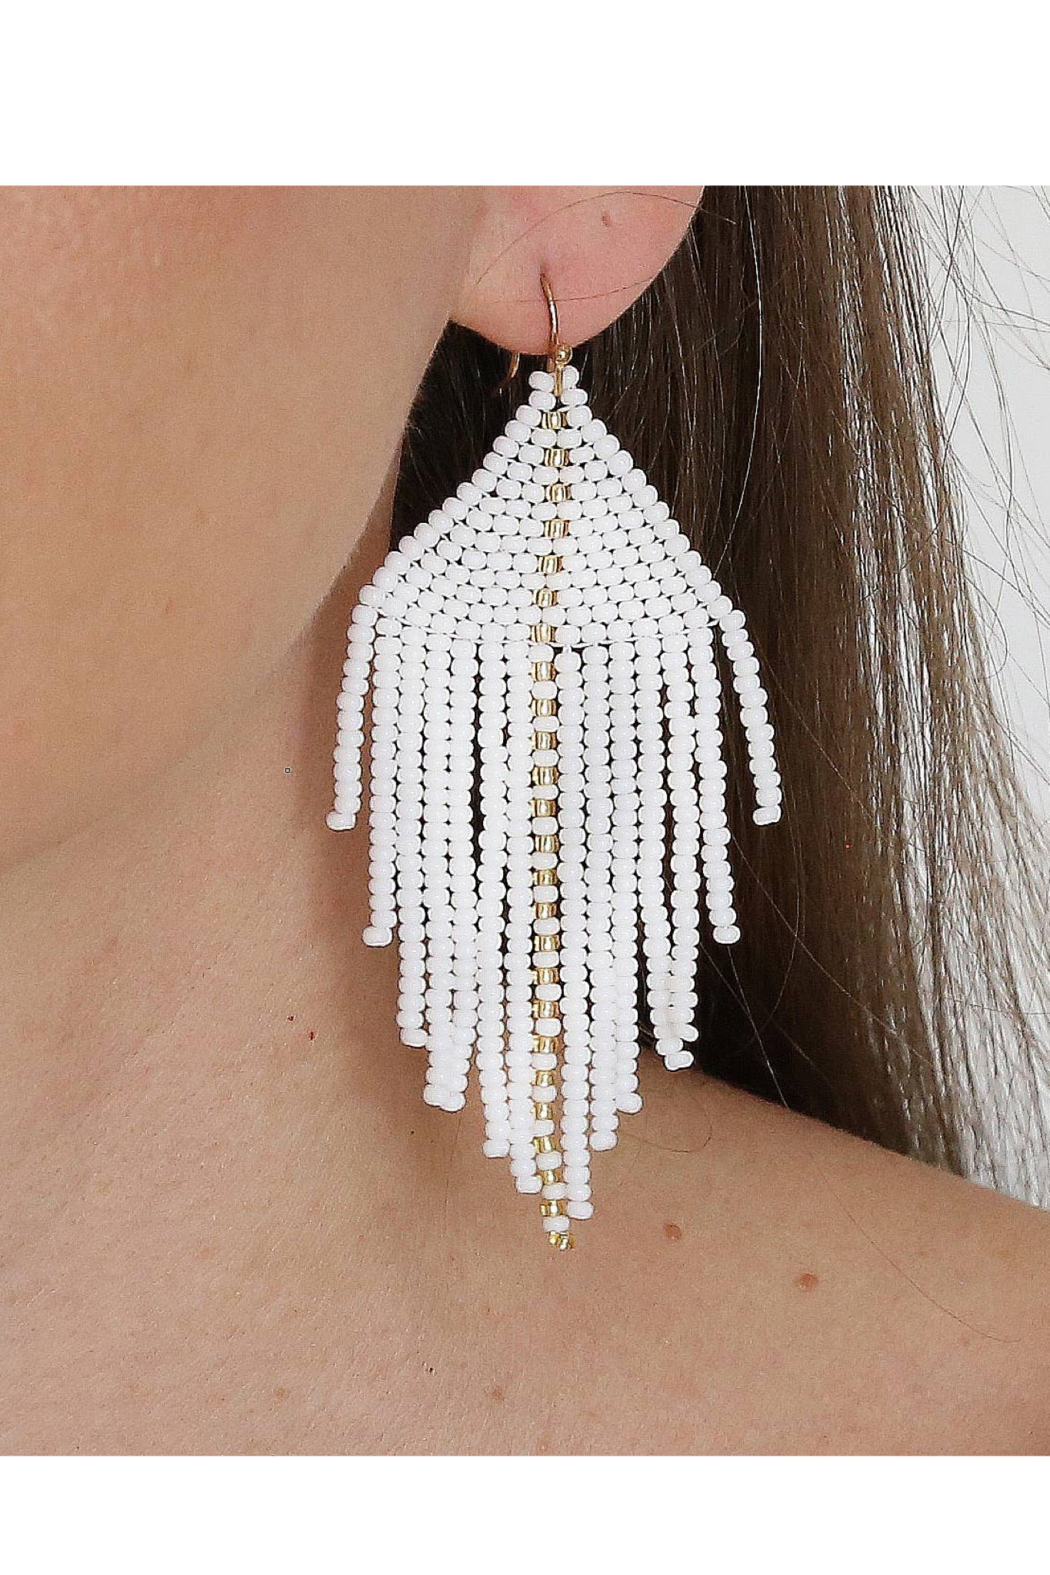 Fosterie  Raya Beaded Earrings White - Front Full Image